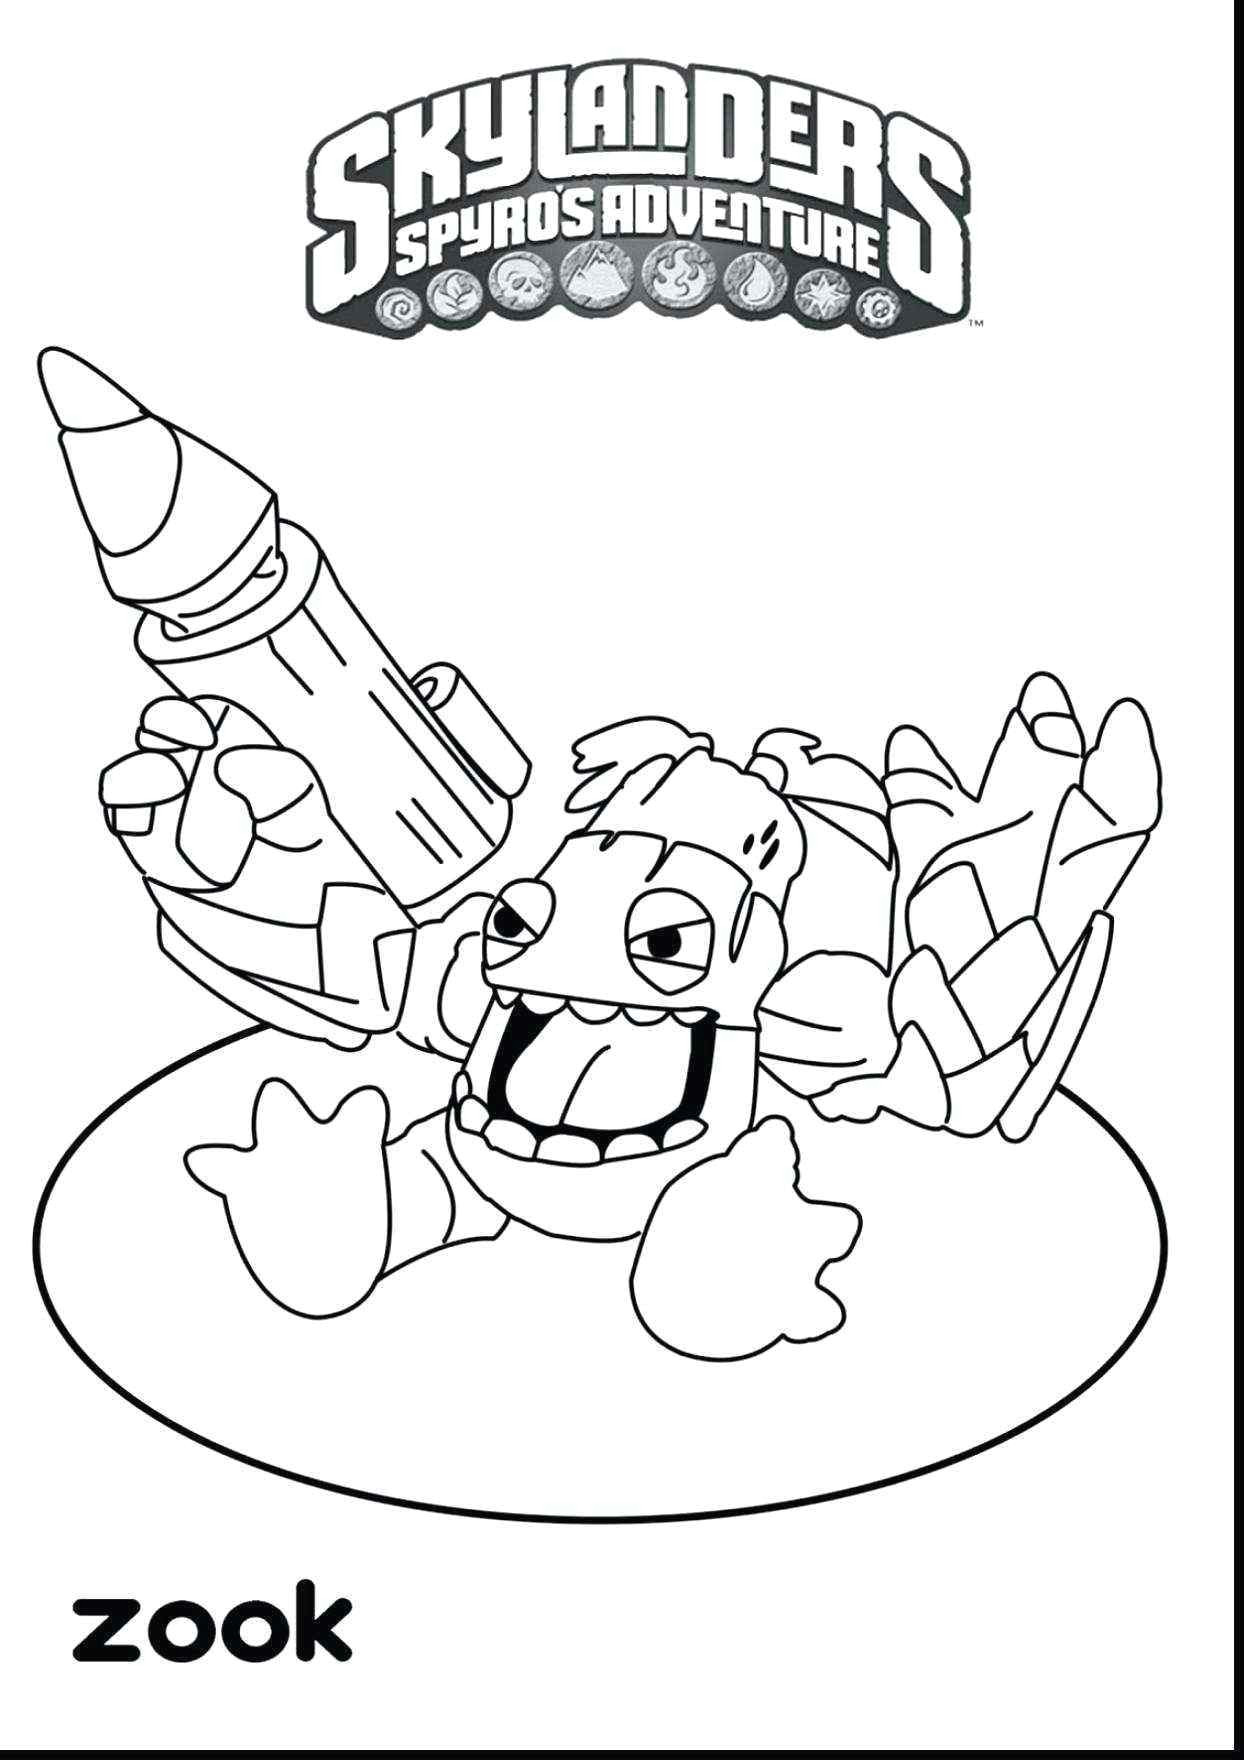 Drawing Christmas Things Elegant Christmas Decorations for Kids to Color Prekhome